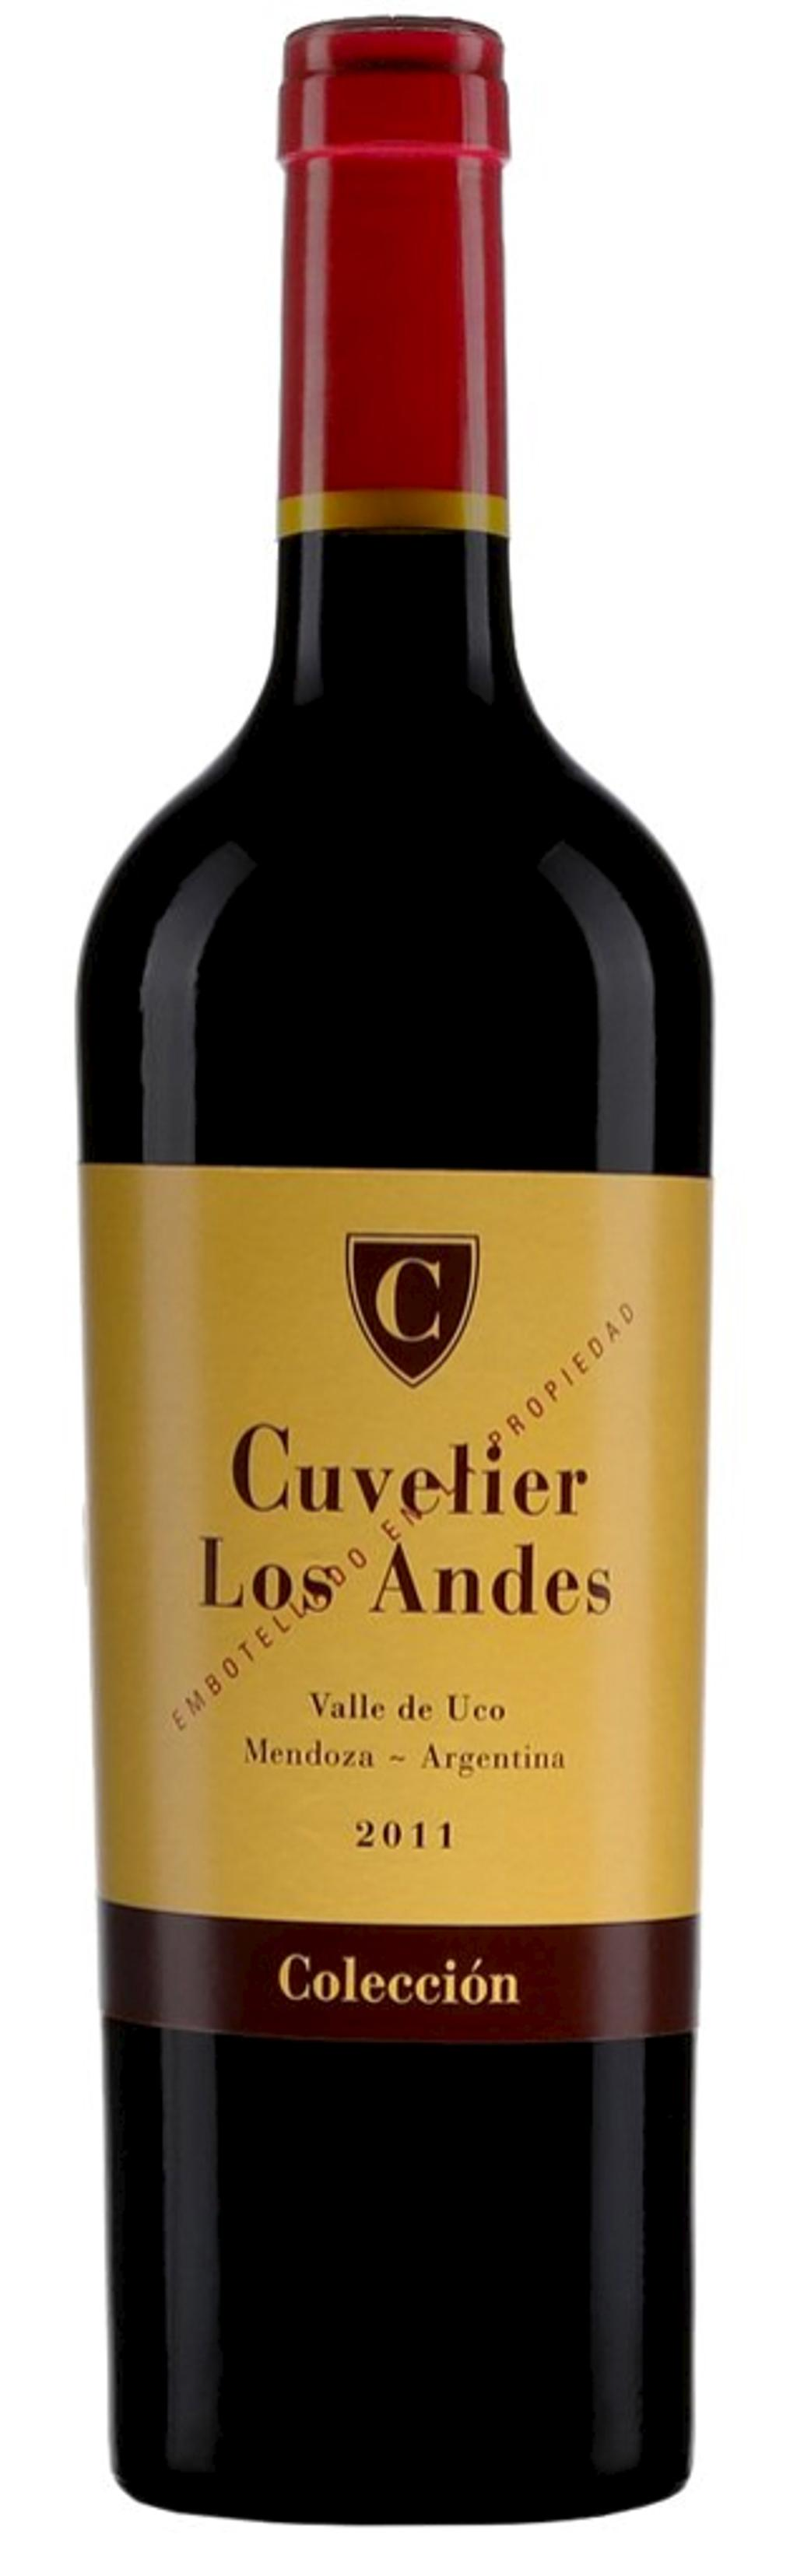 Vallée de Uco 2013, Colleccion, Cuvelier Los Andes (SAQ : 12 921 878 — 26,55 $)